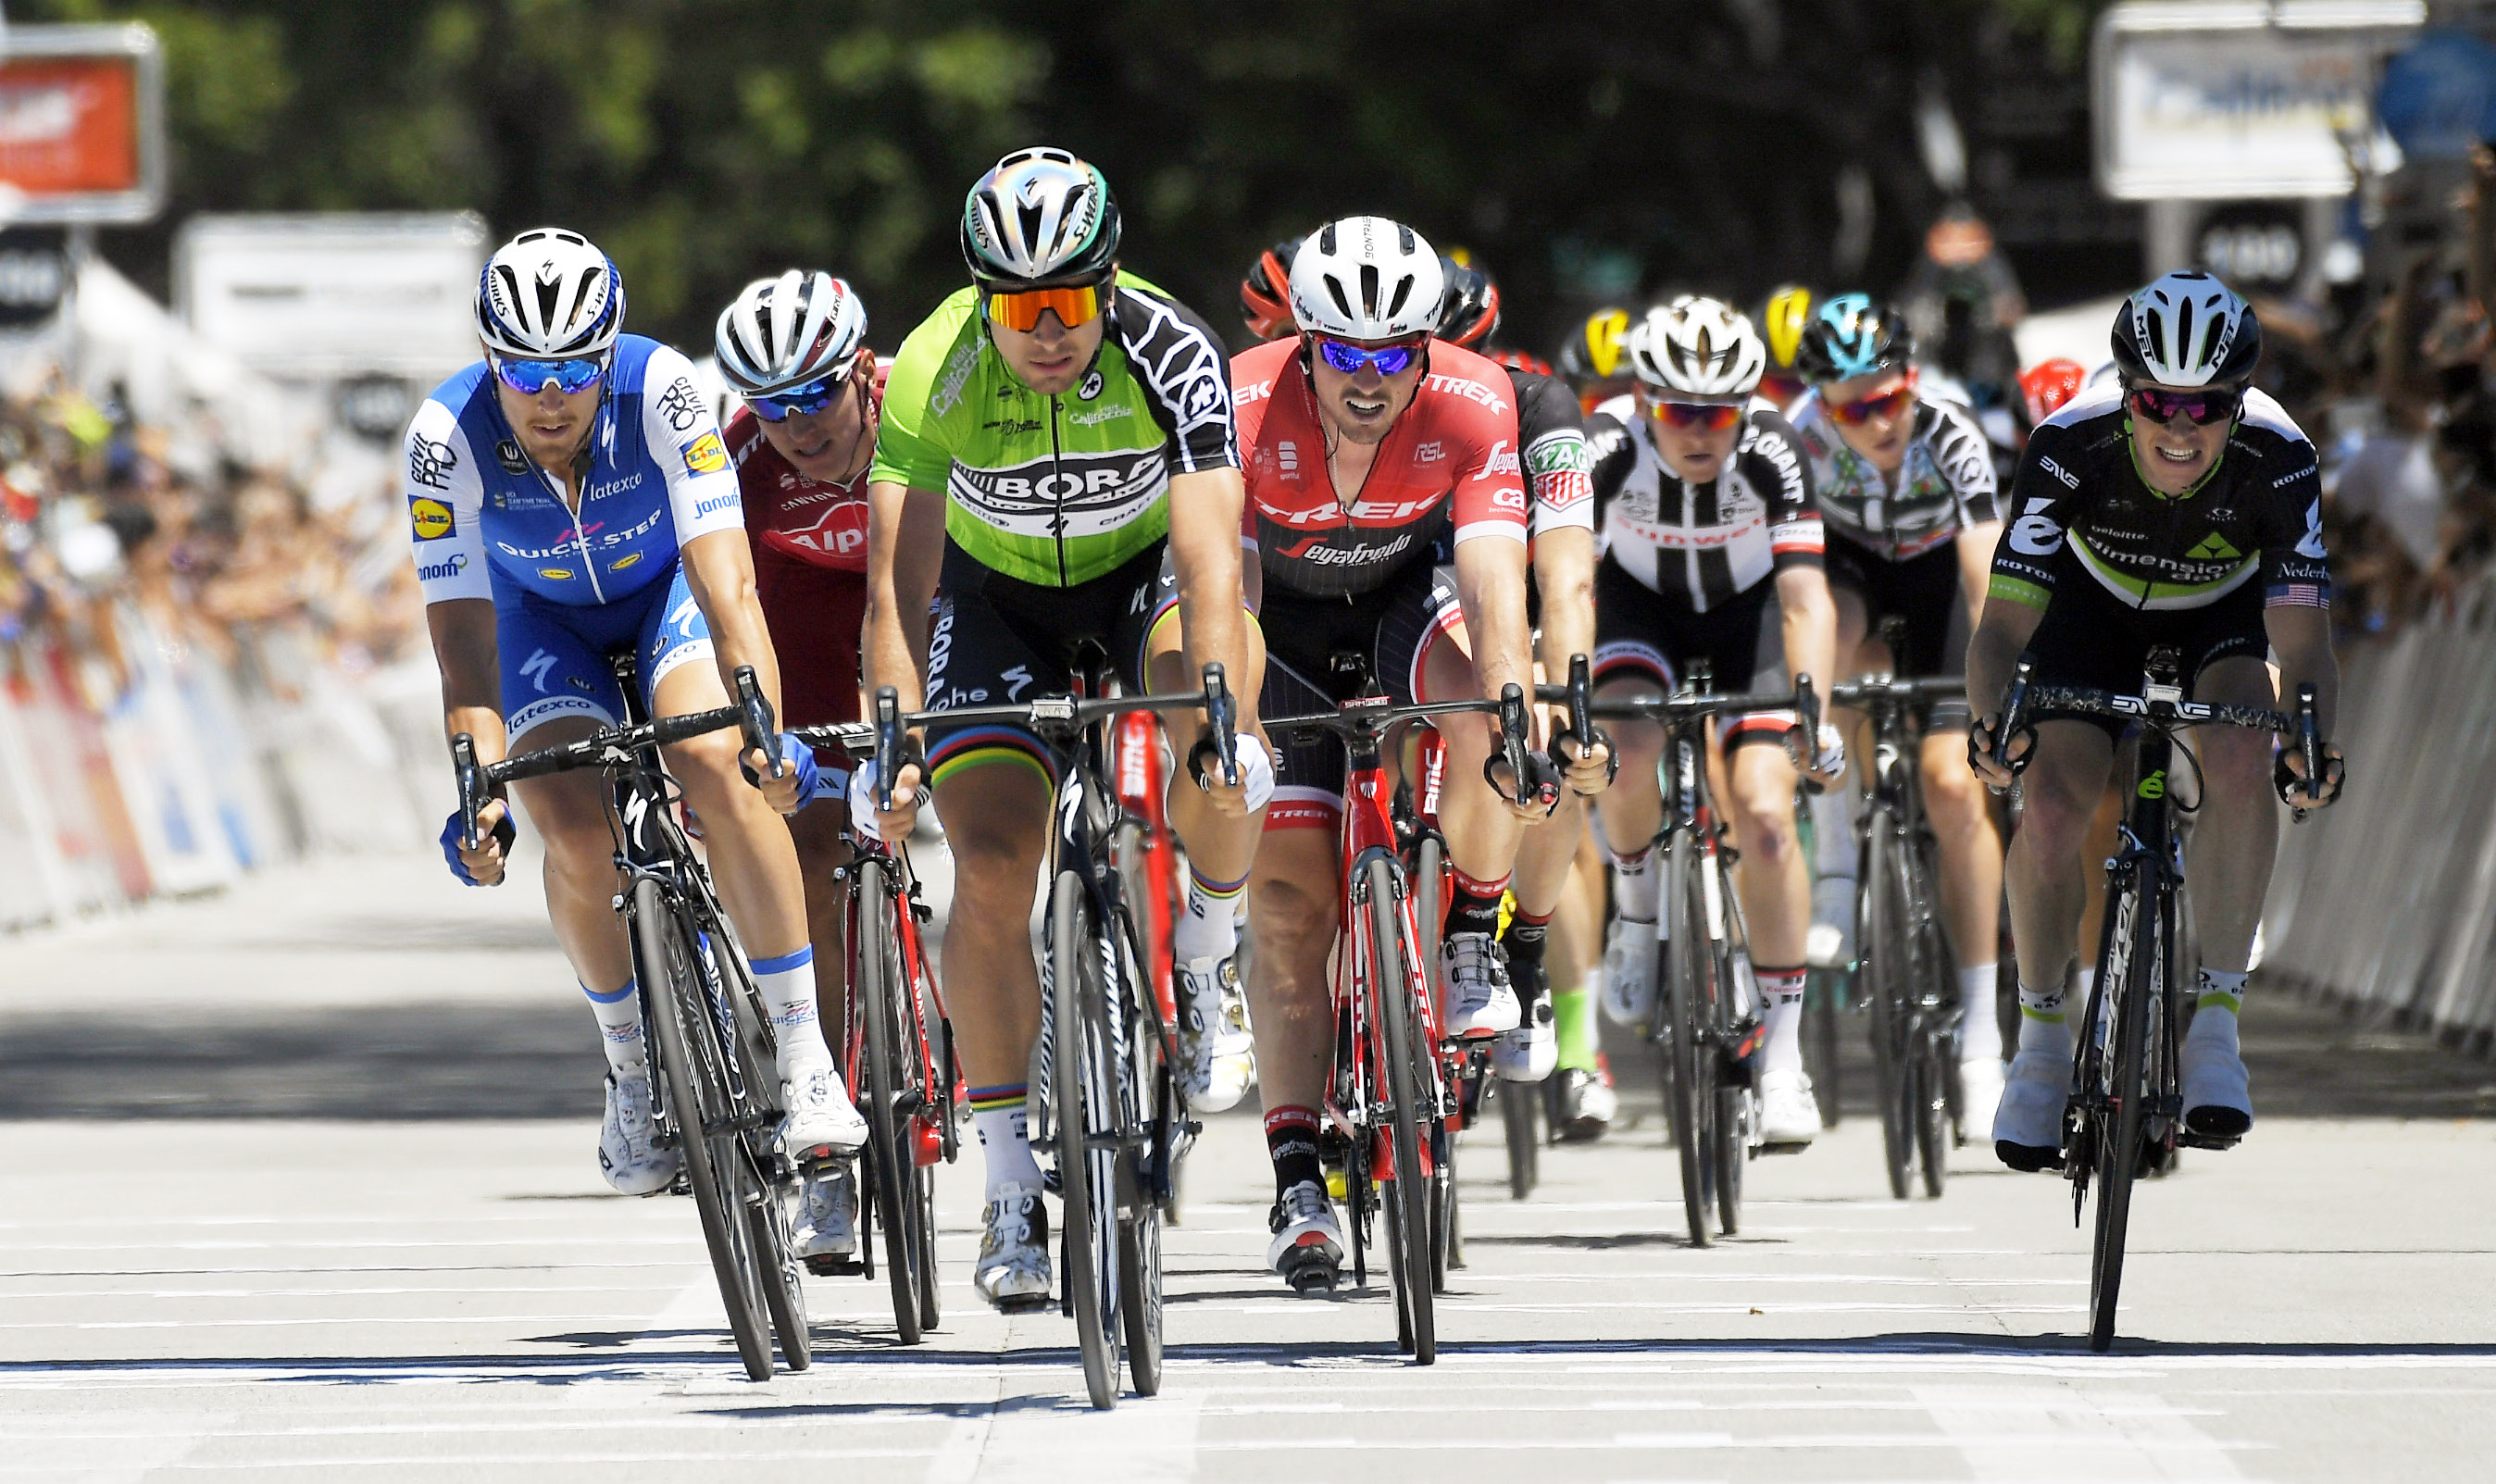 Peter Sagan (third from left) of Slovakia crosses the finish line as he wins the sprint portion of the Amgen Tour of California cycling race, on Saturday in Pasadena, Calif.